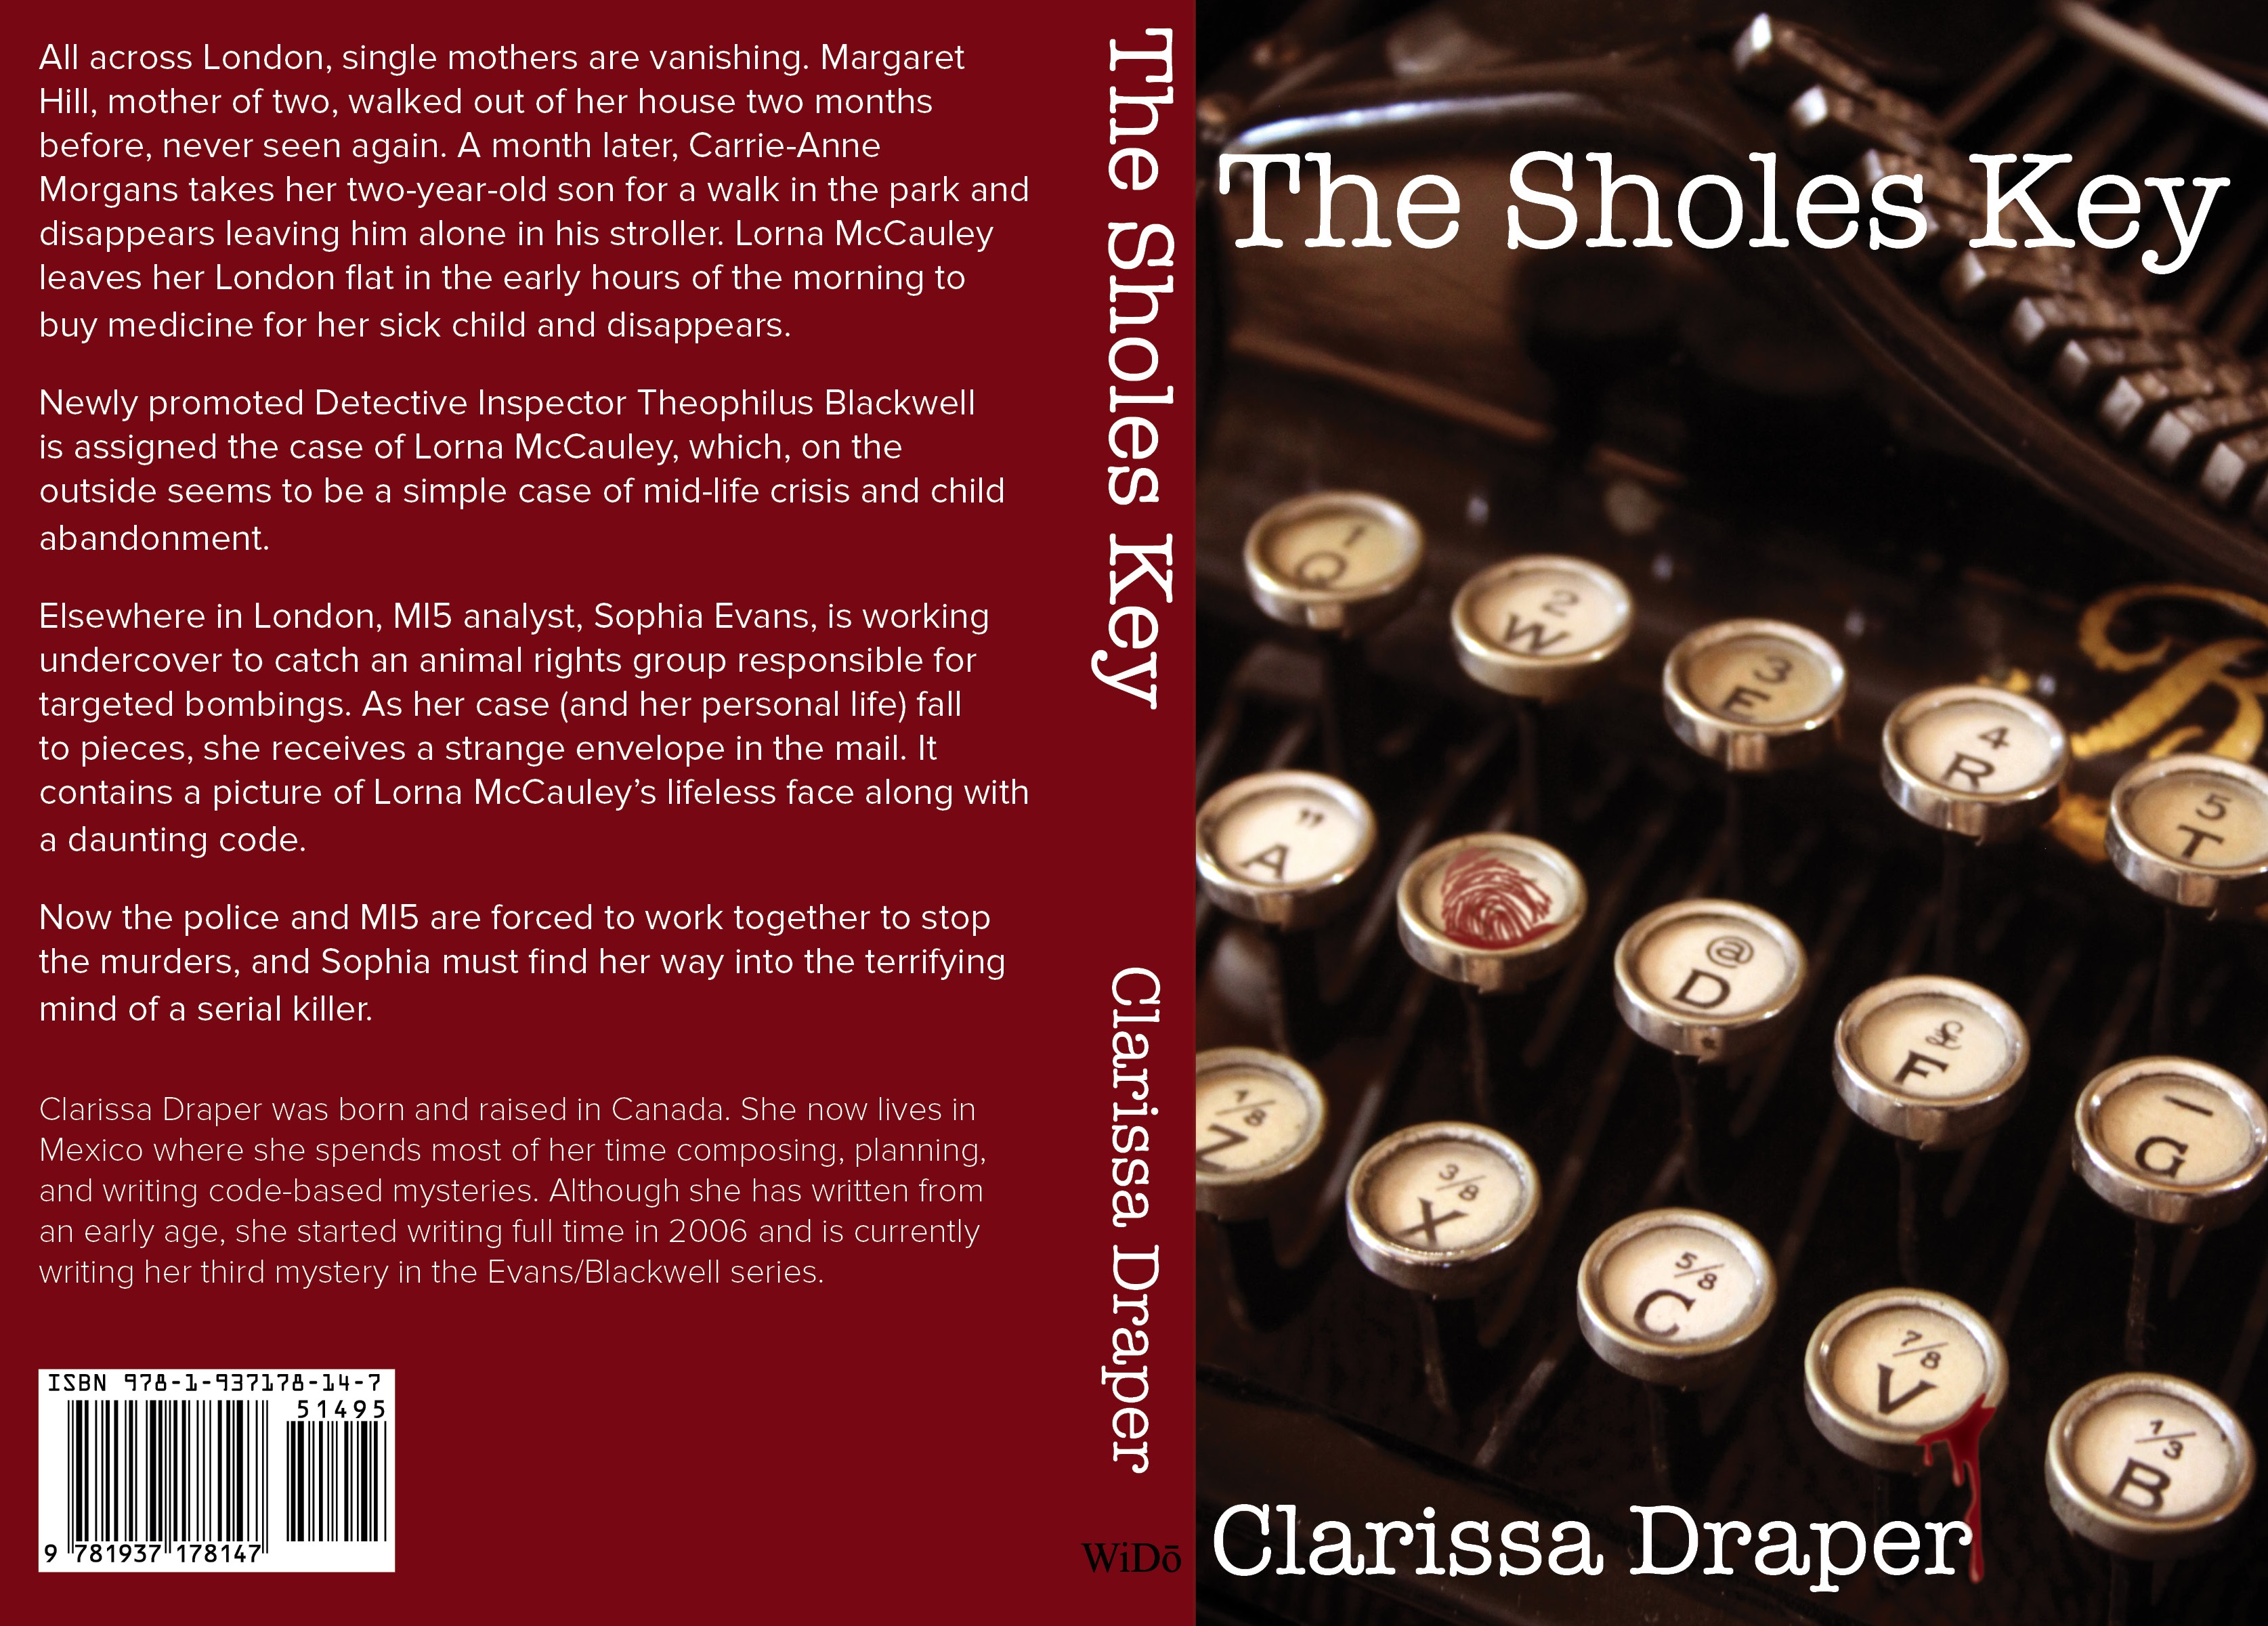 The Sholes Key by Clarissa Draper